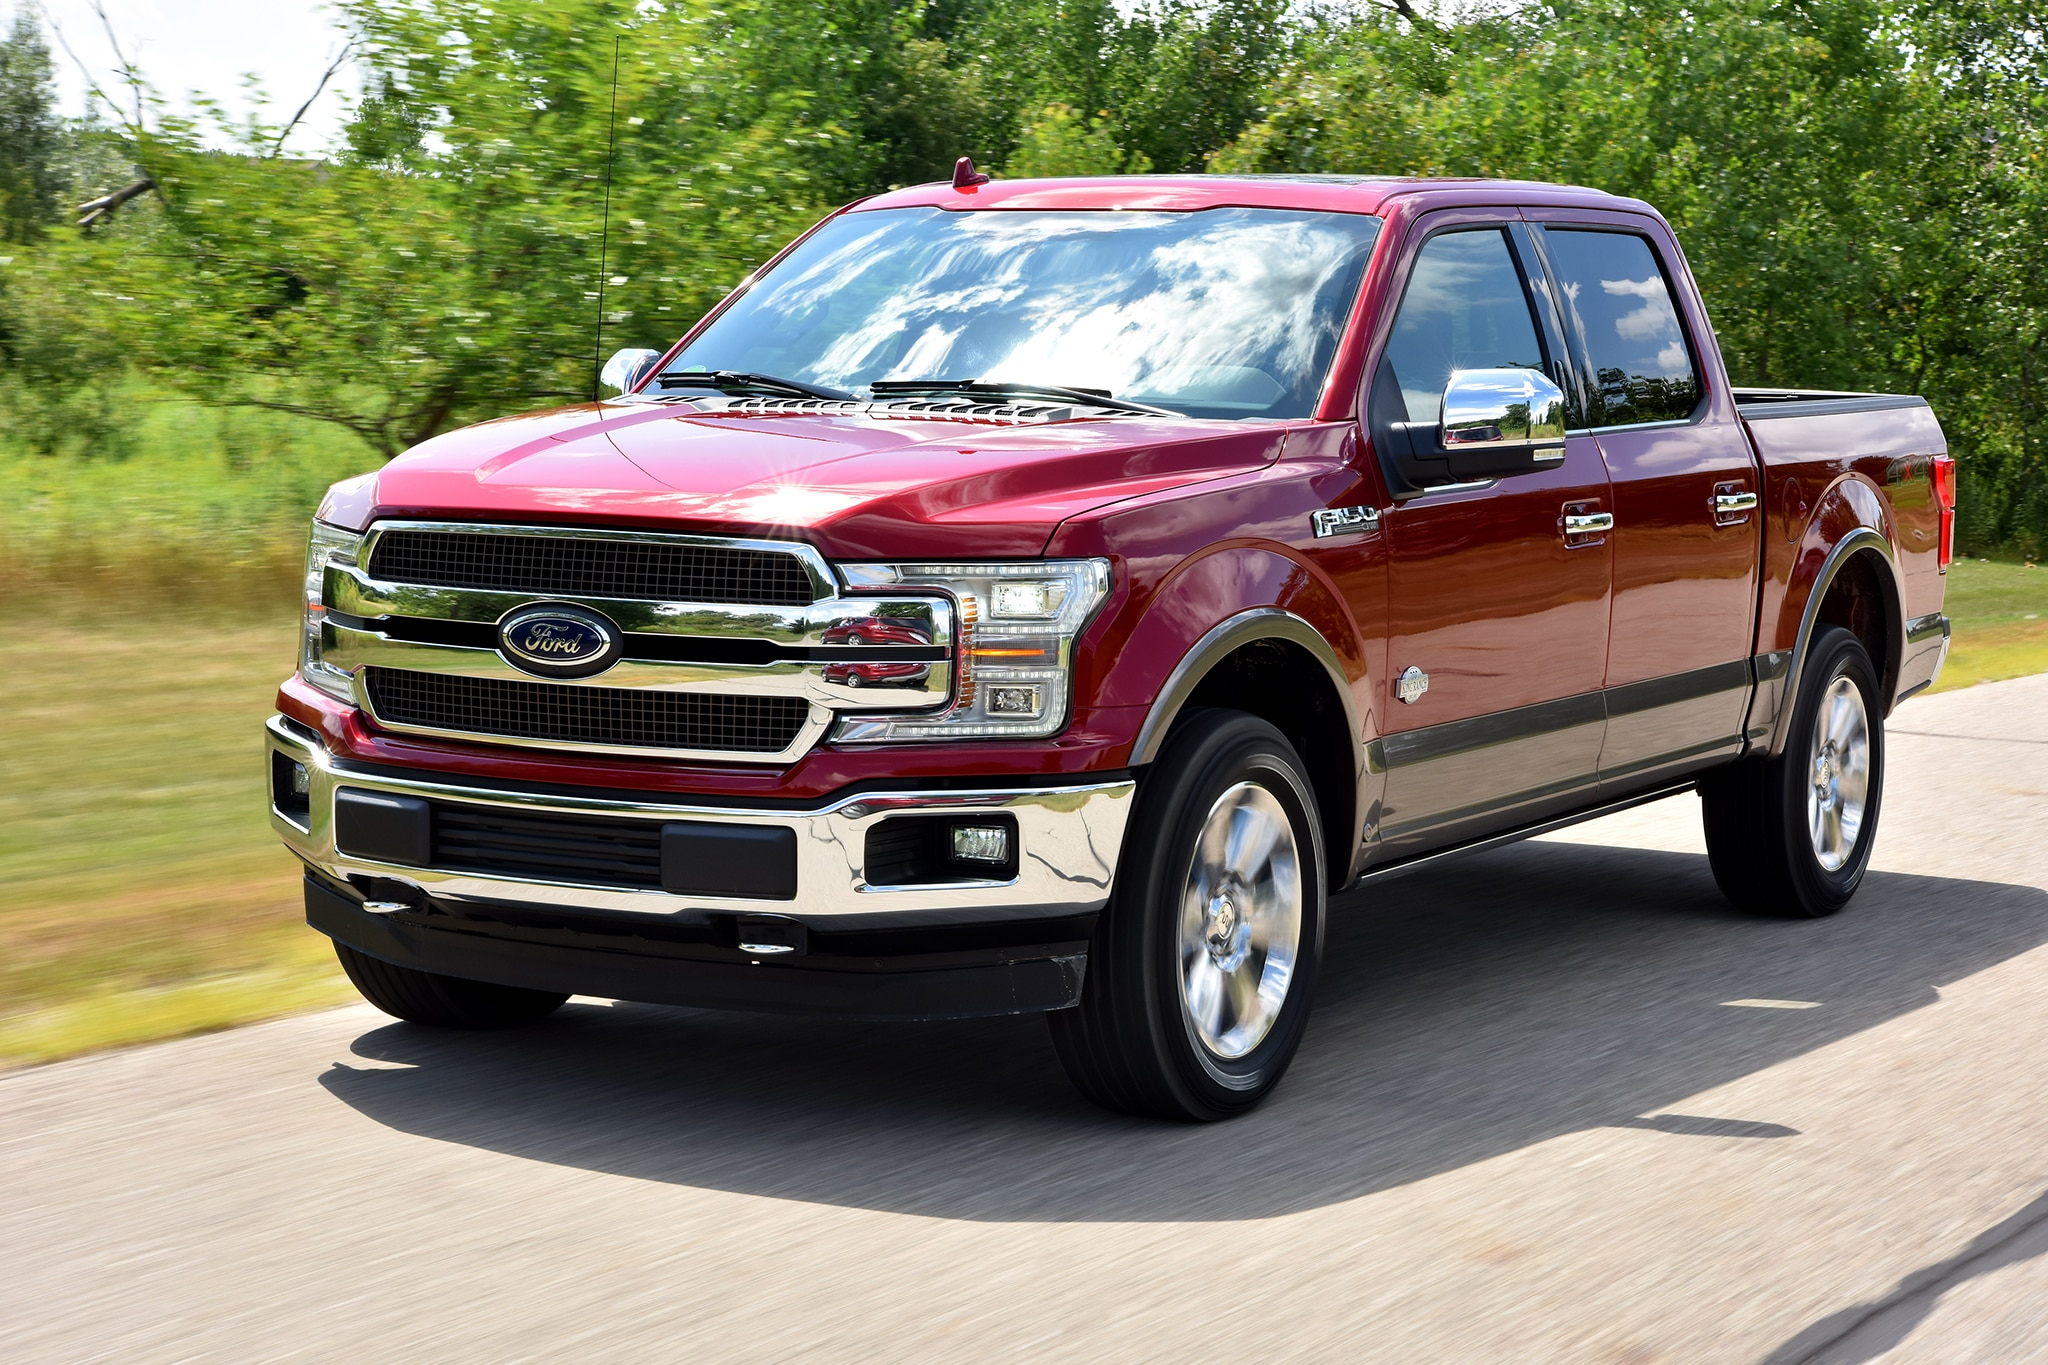 ford f150. Show More Ford F150 D